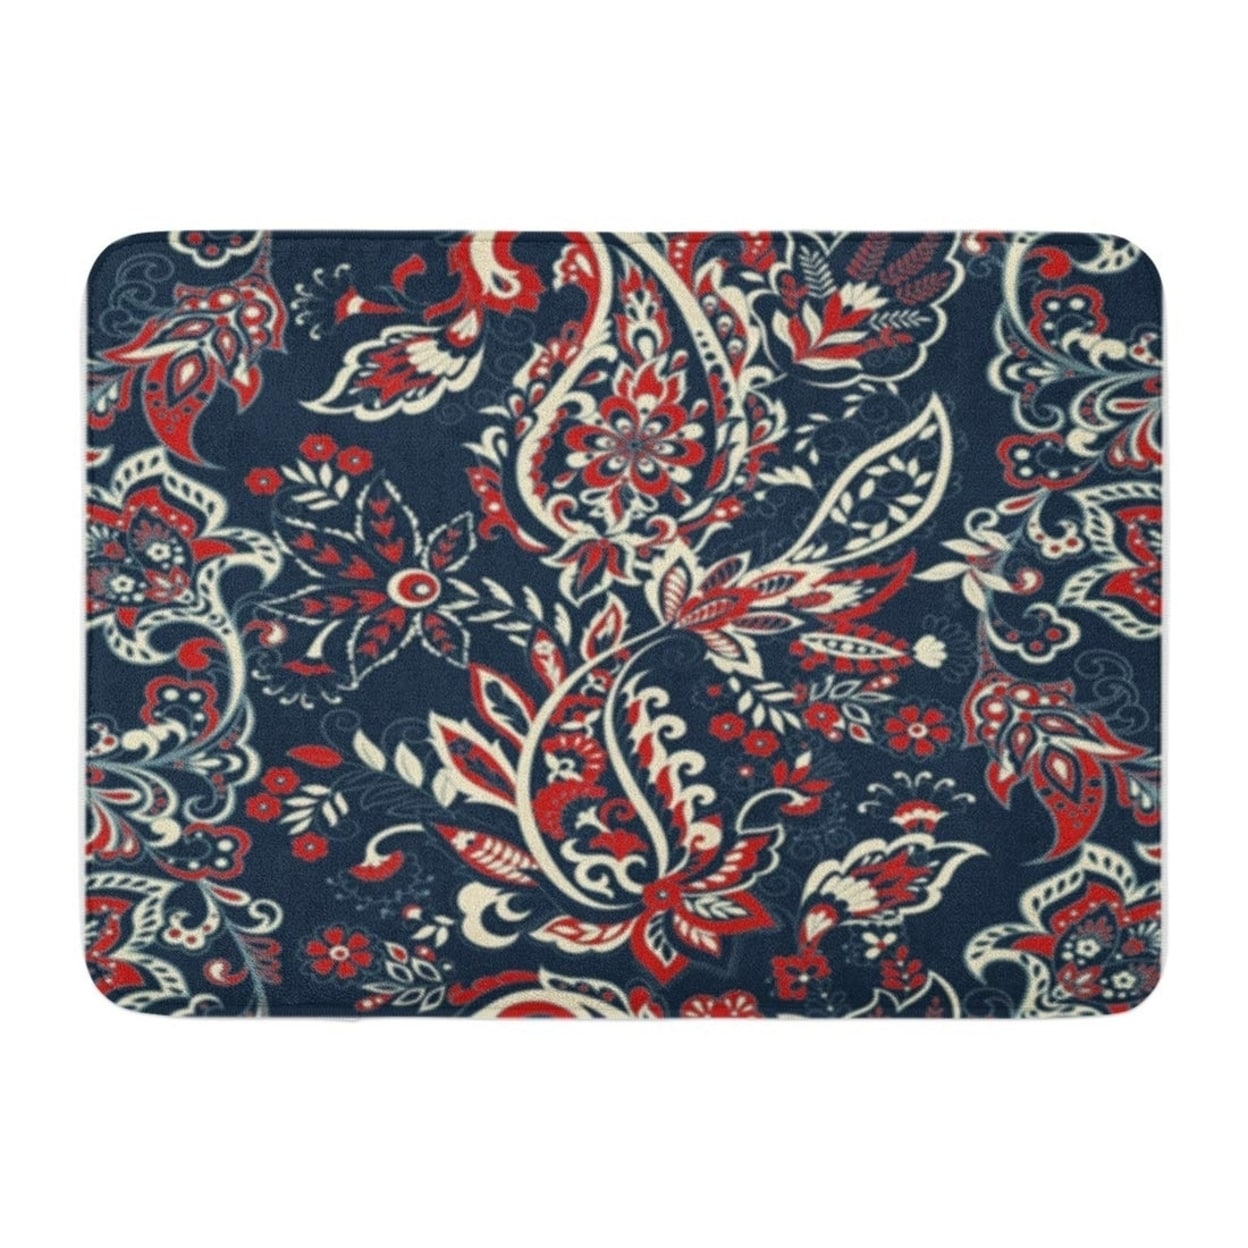 Colorful Paisley Flowers Pattern Floral Vintage Bohemian Doormat Floor Rug Bath Mat 23 6x15 7 Inch Multi On Sale Overstock 31778562